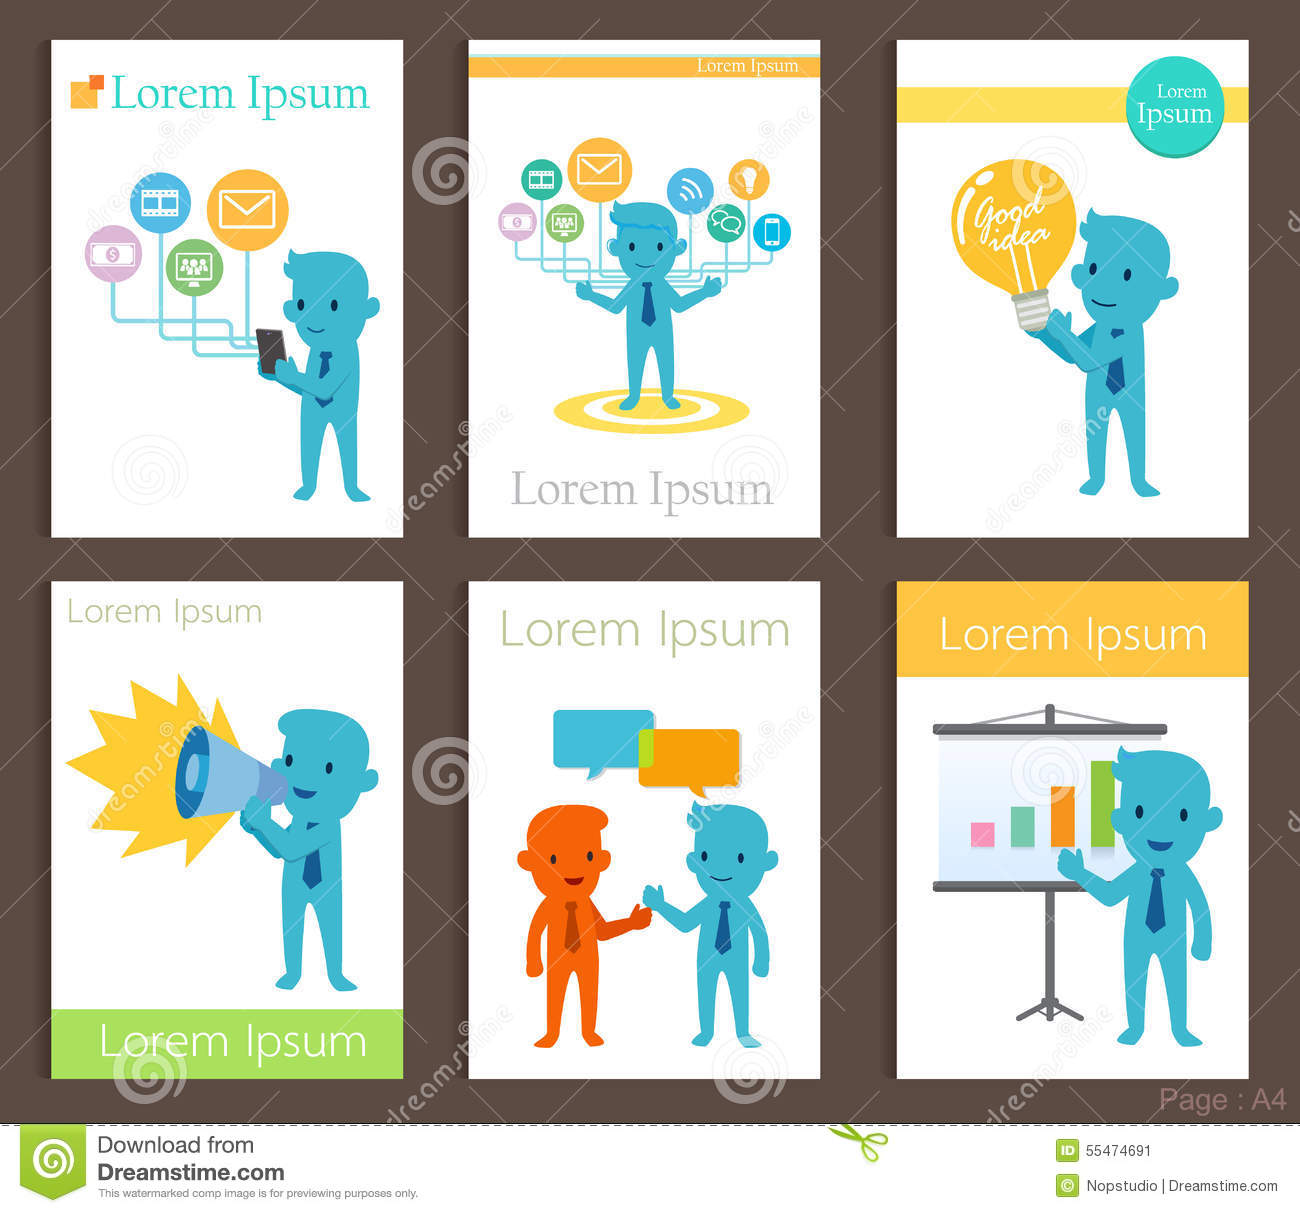 Set of brochure design business communication templates stock vector set of brochure design business communication templates stock vector illustration of entertainment background 55474691 accmission Gallery